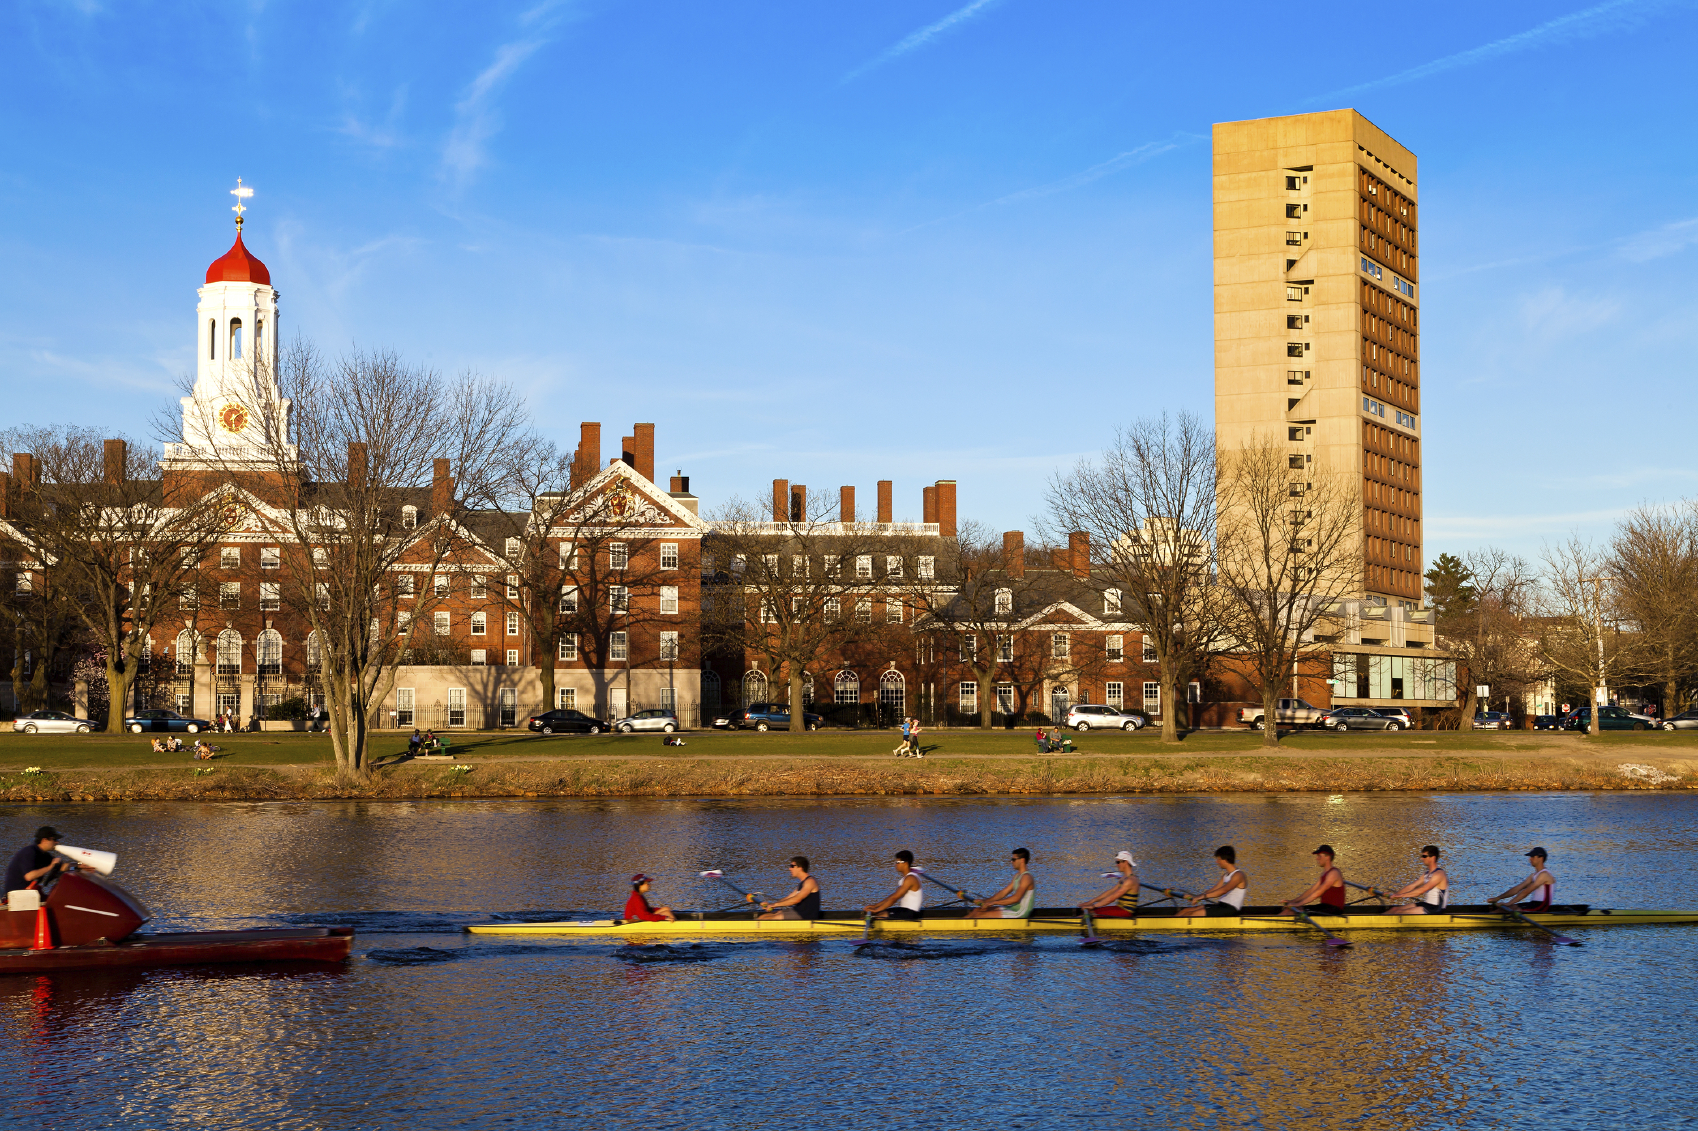 The 5 Things You'll Miss Most About Your College Town